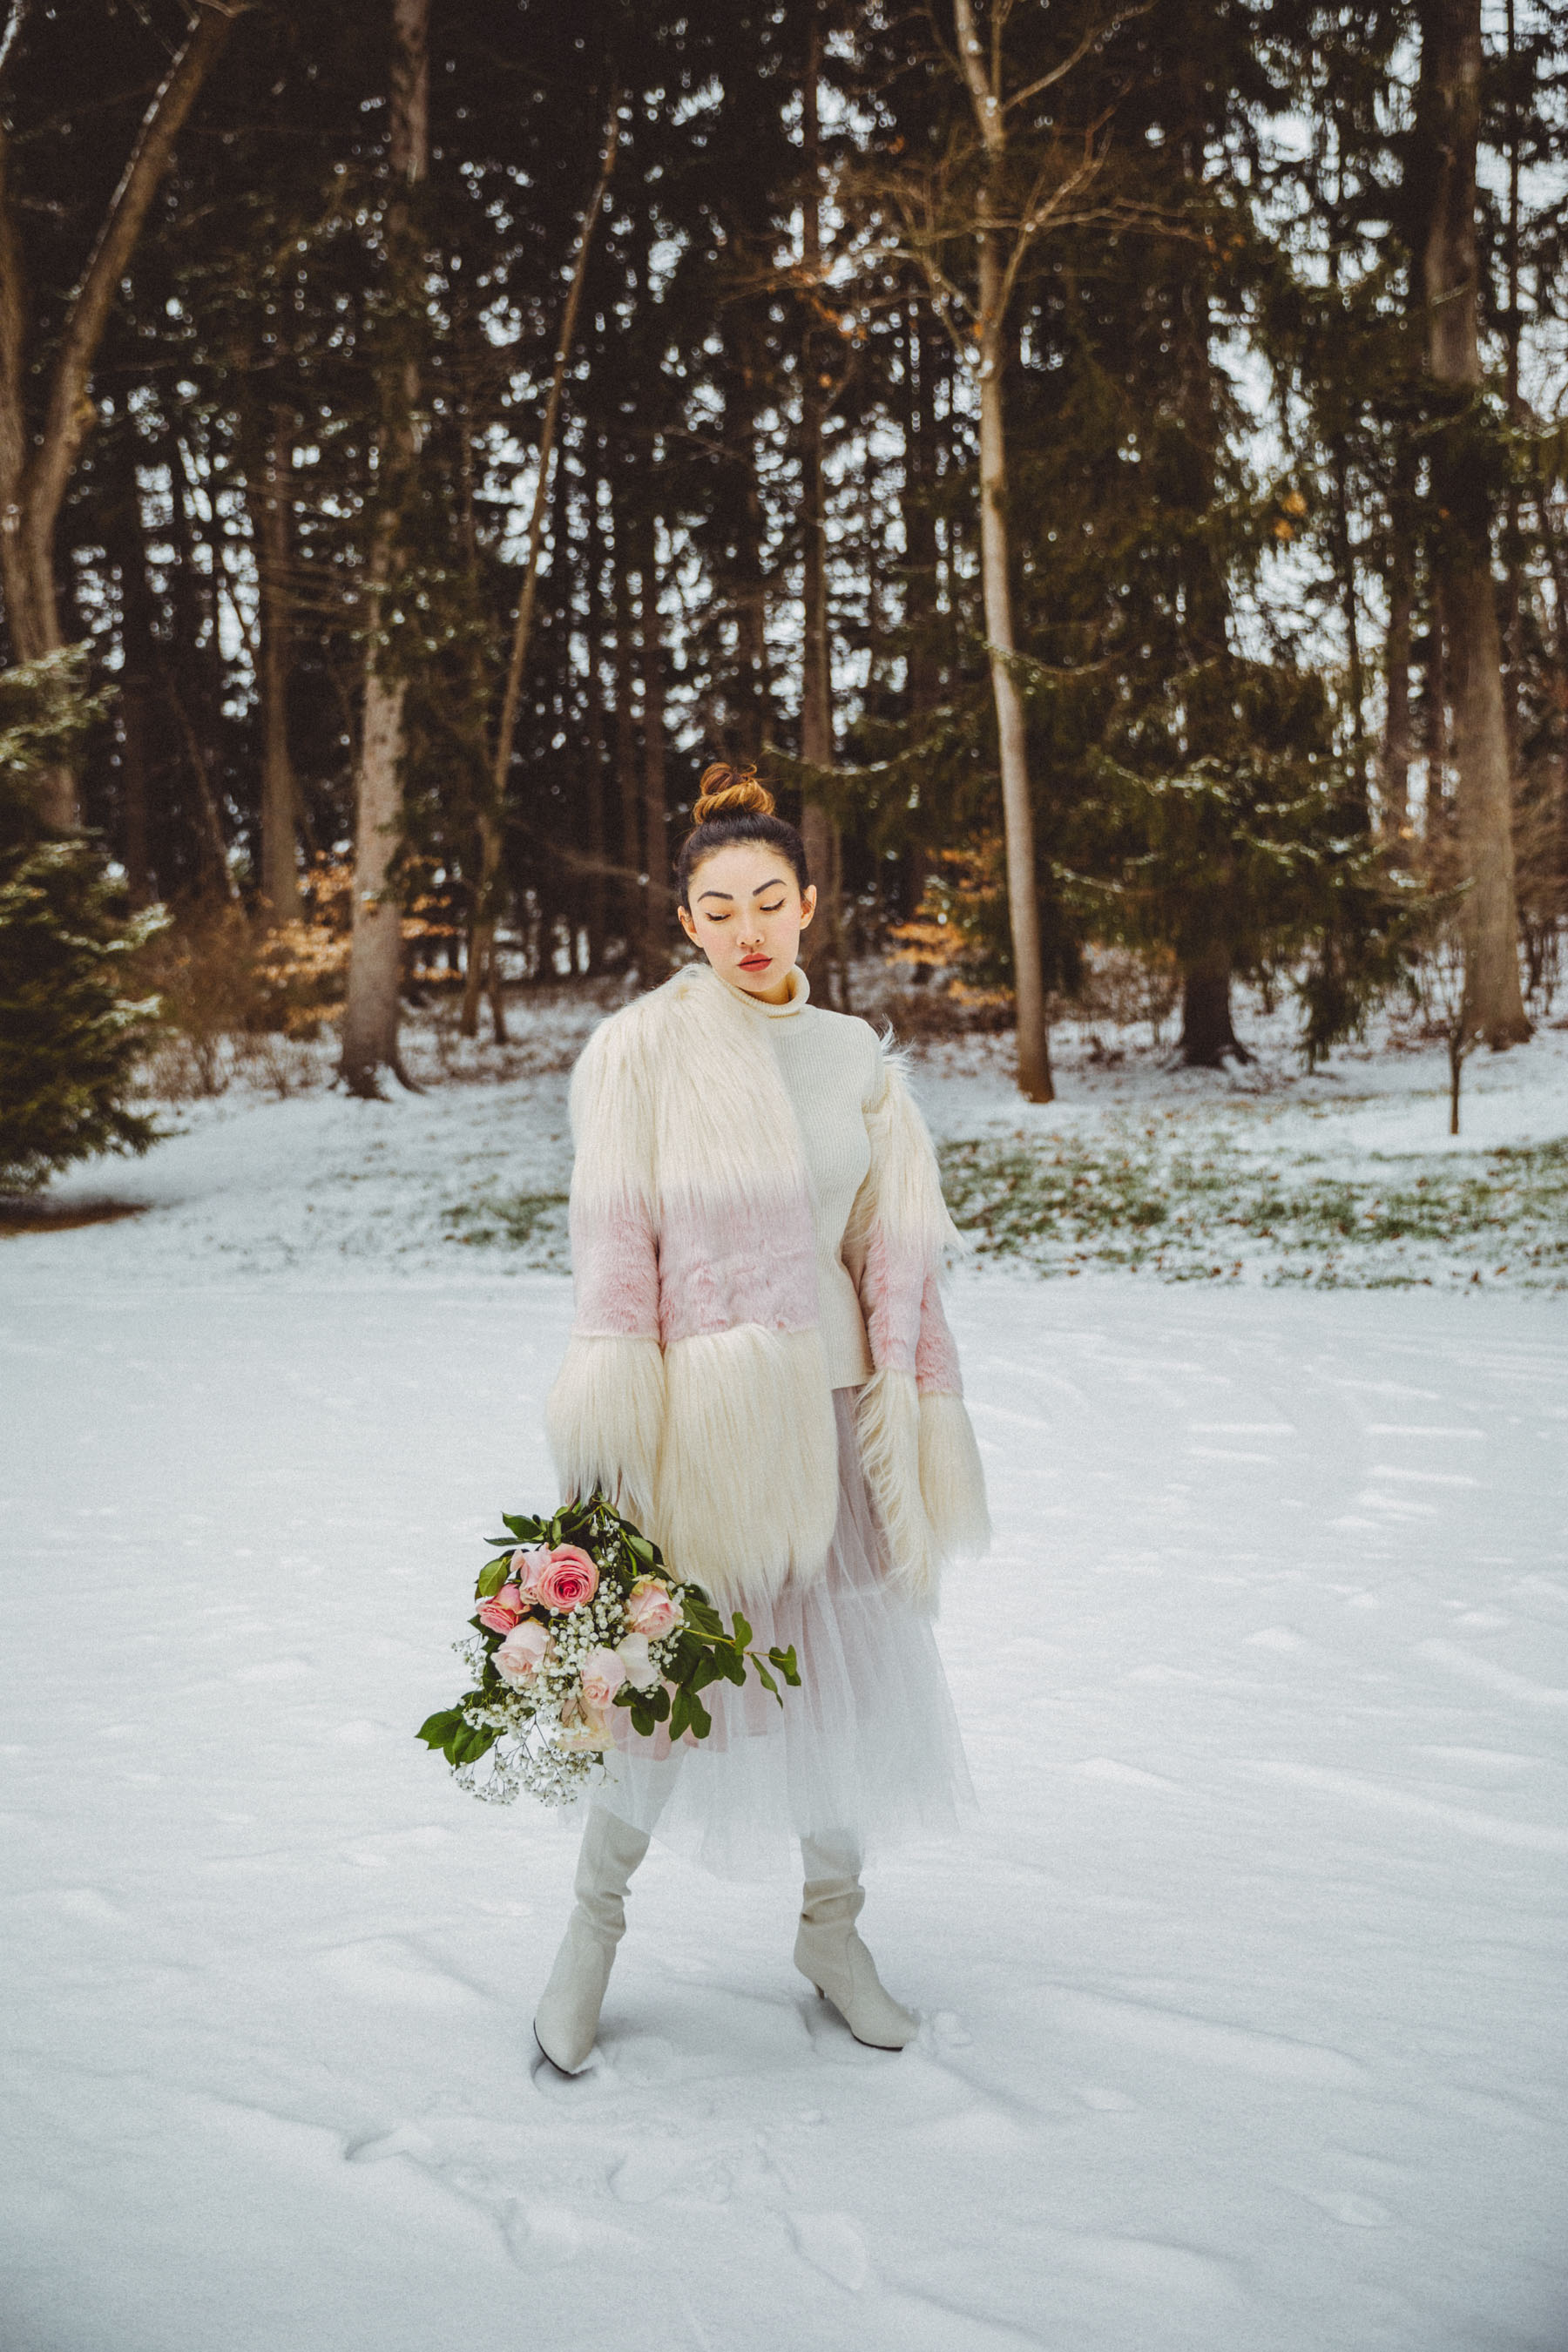 Dressy Winter Looks - White and Pink Fur Coat with Tulle Skirt and White Sweater // Notjessfashion.com // elegant winter outfit, dressy outfits for the snow, snow outfit, tulle midi skirt, white boots, winter white outfit, asian blogger, new york fashion blogger, winter fashion editorial